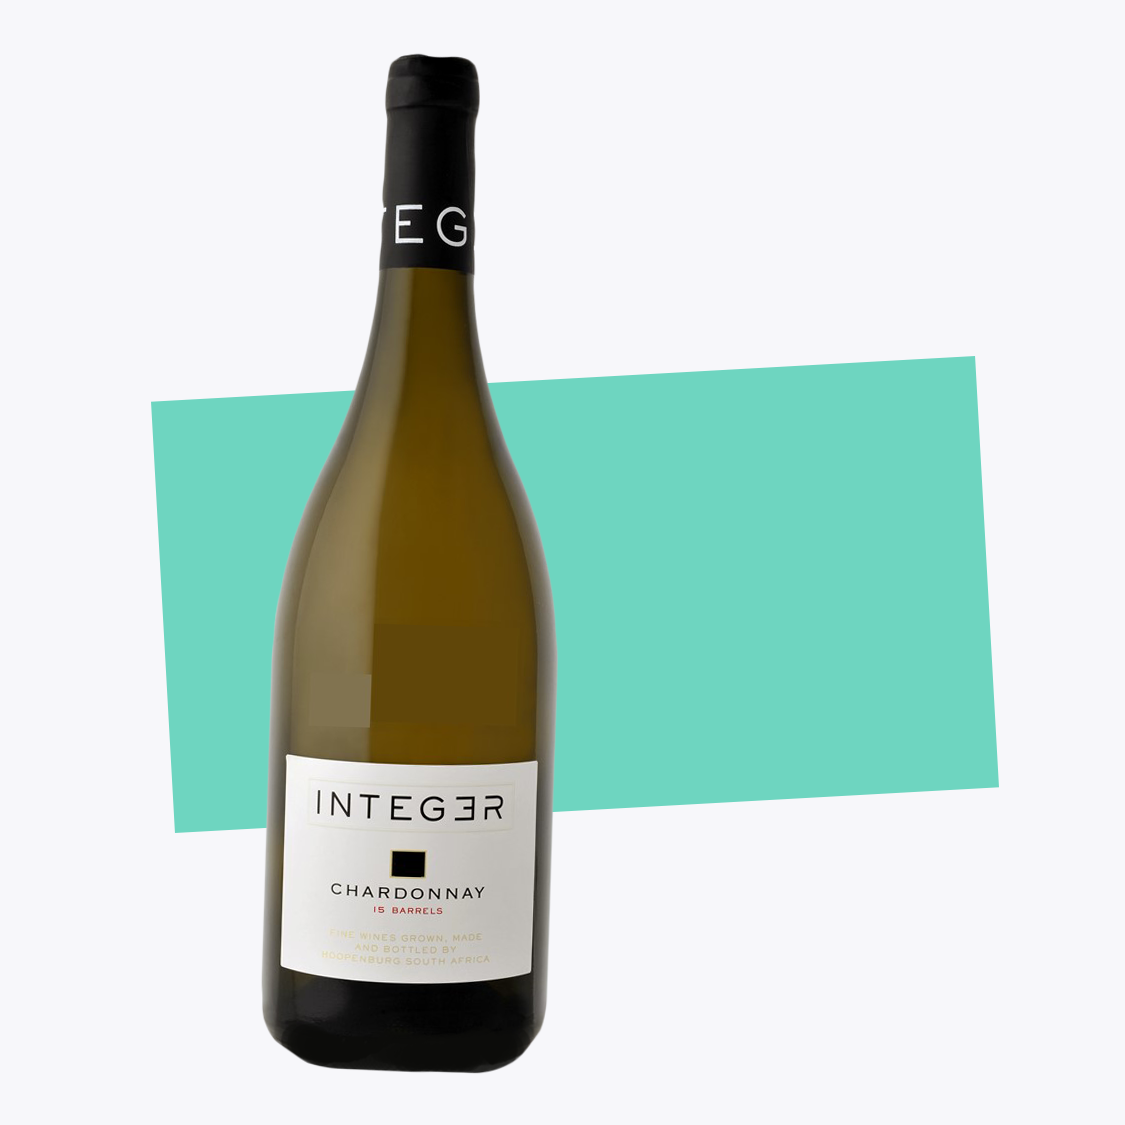 Integer Chardonnay By Hoopenburg Wines Stellenbosch South Africa